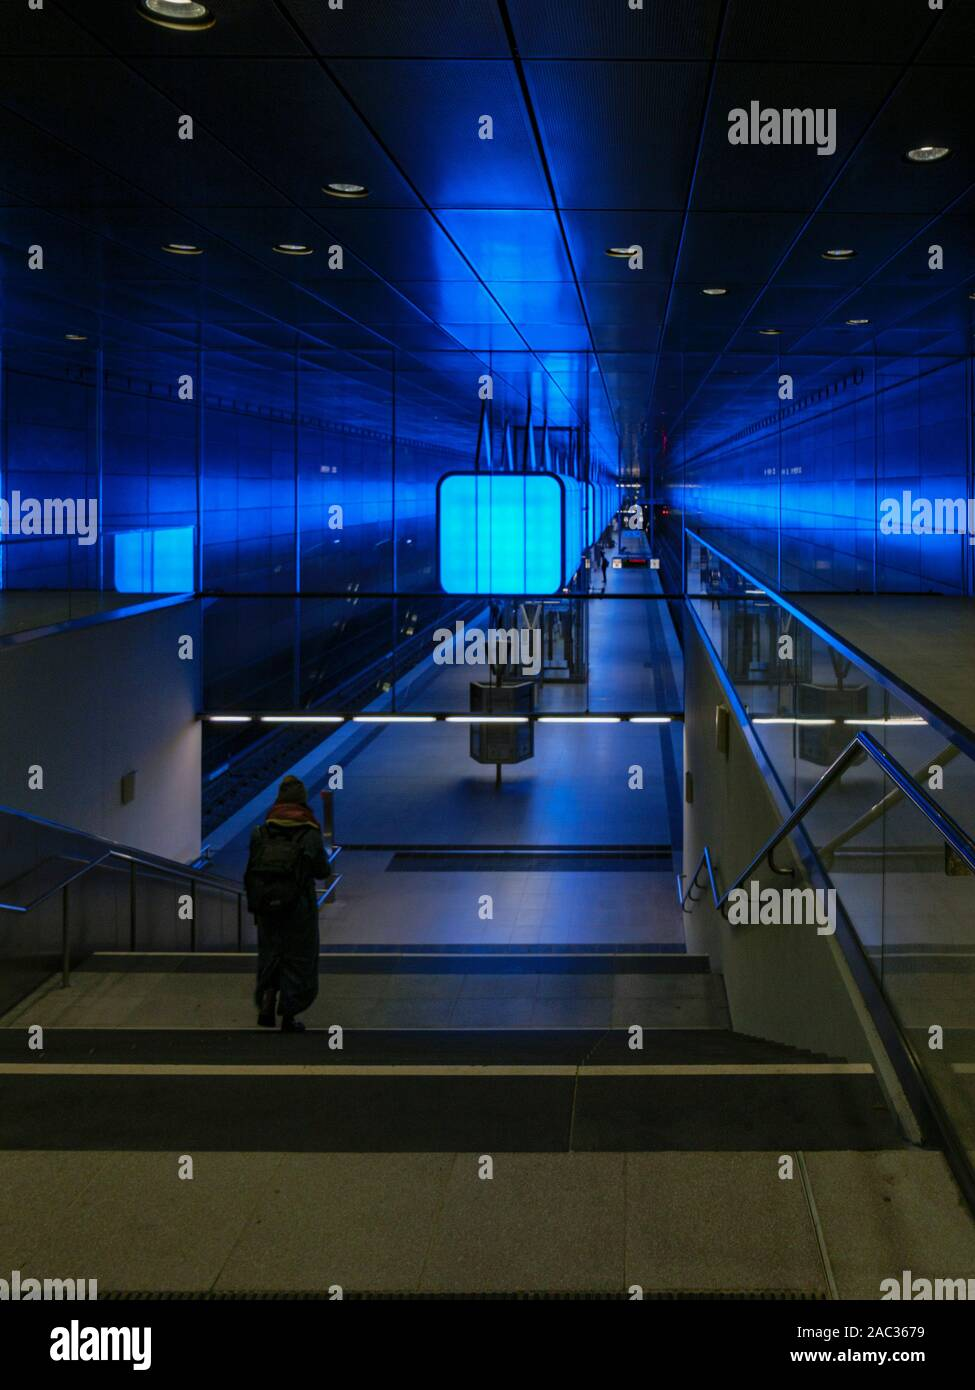 Illuminated Subway station HafenCity Universität, Hamburg, Germany, Europe Stock Photo